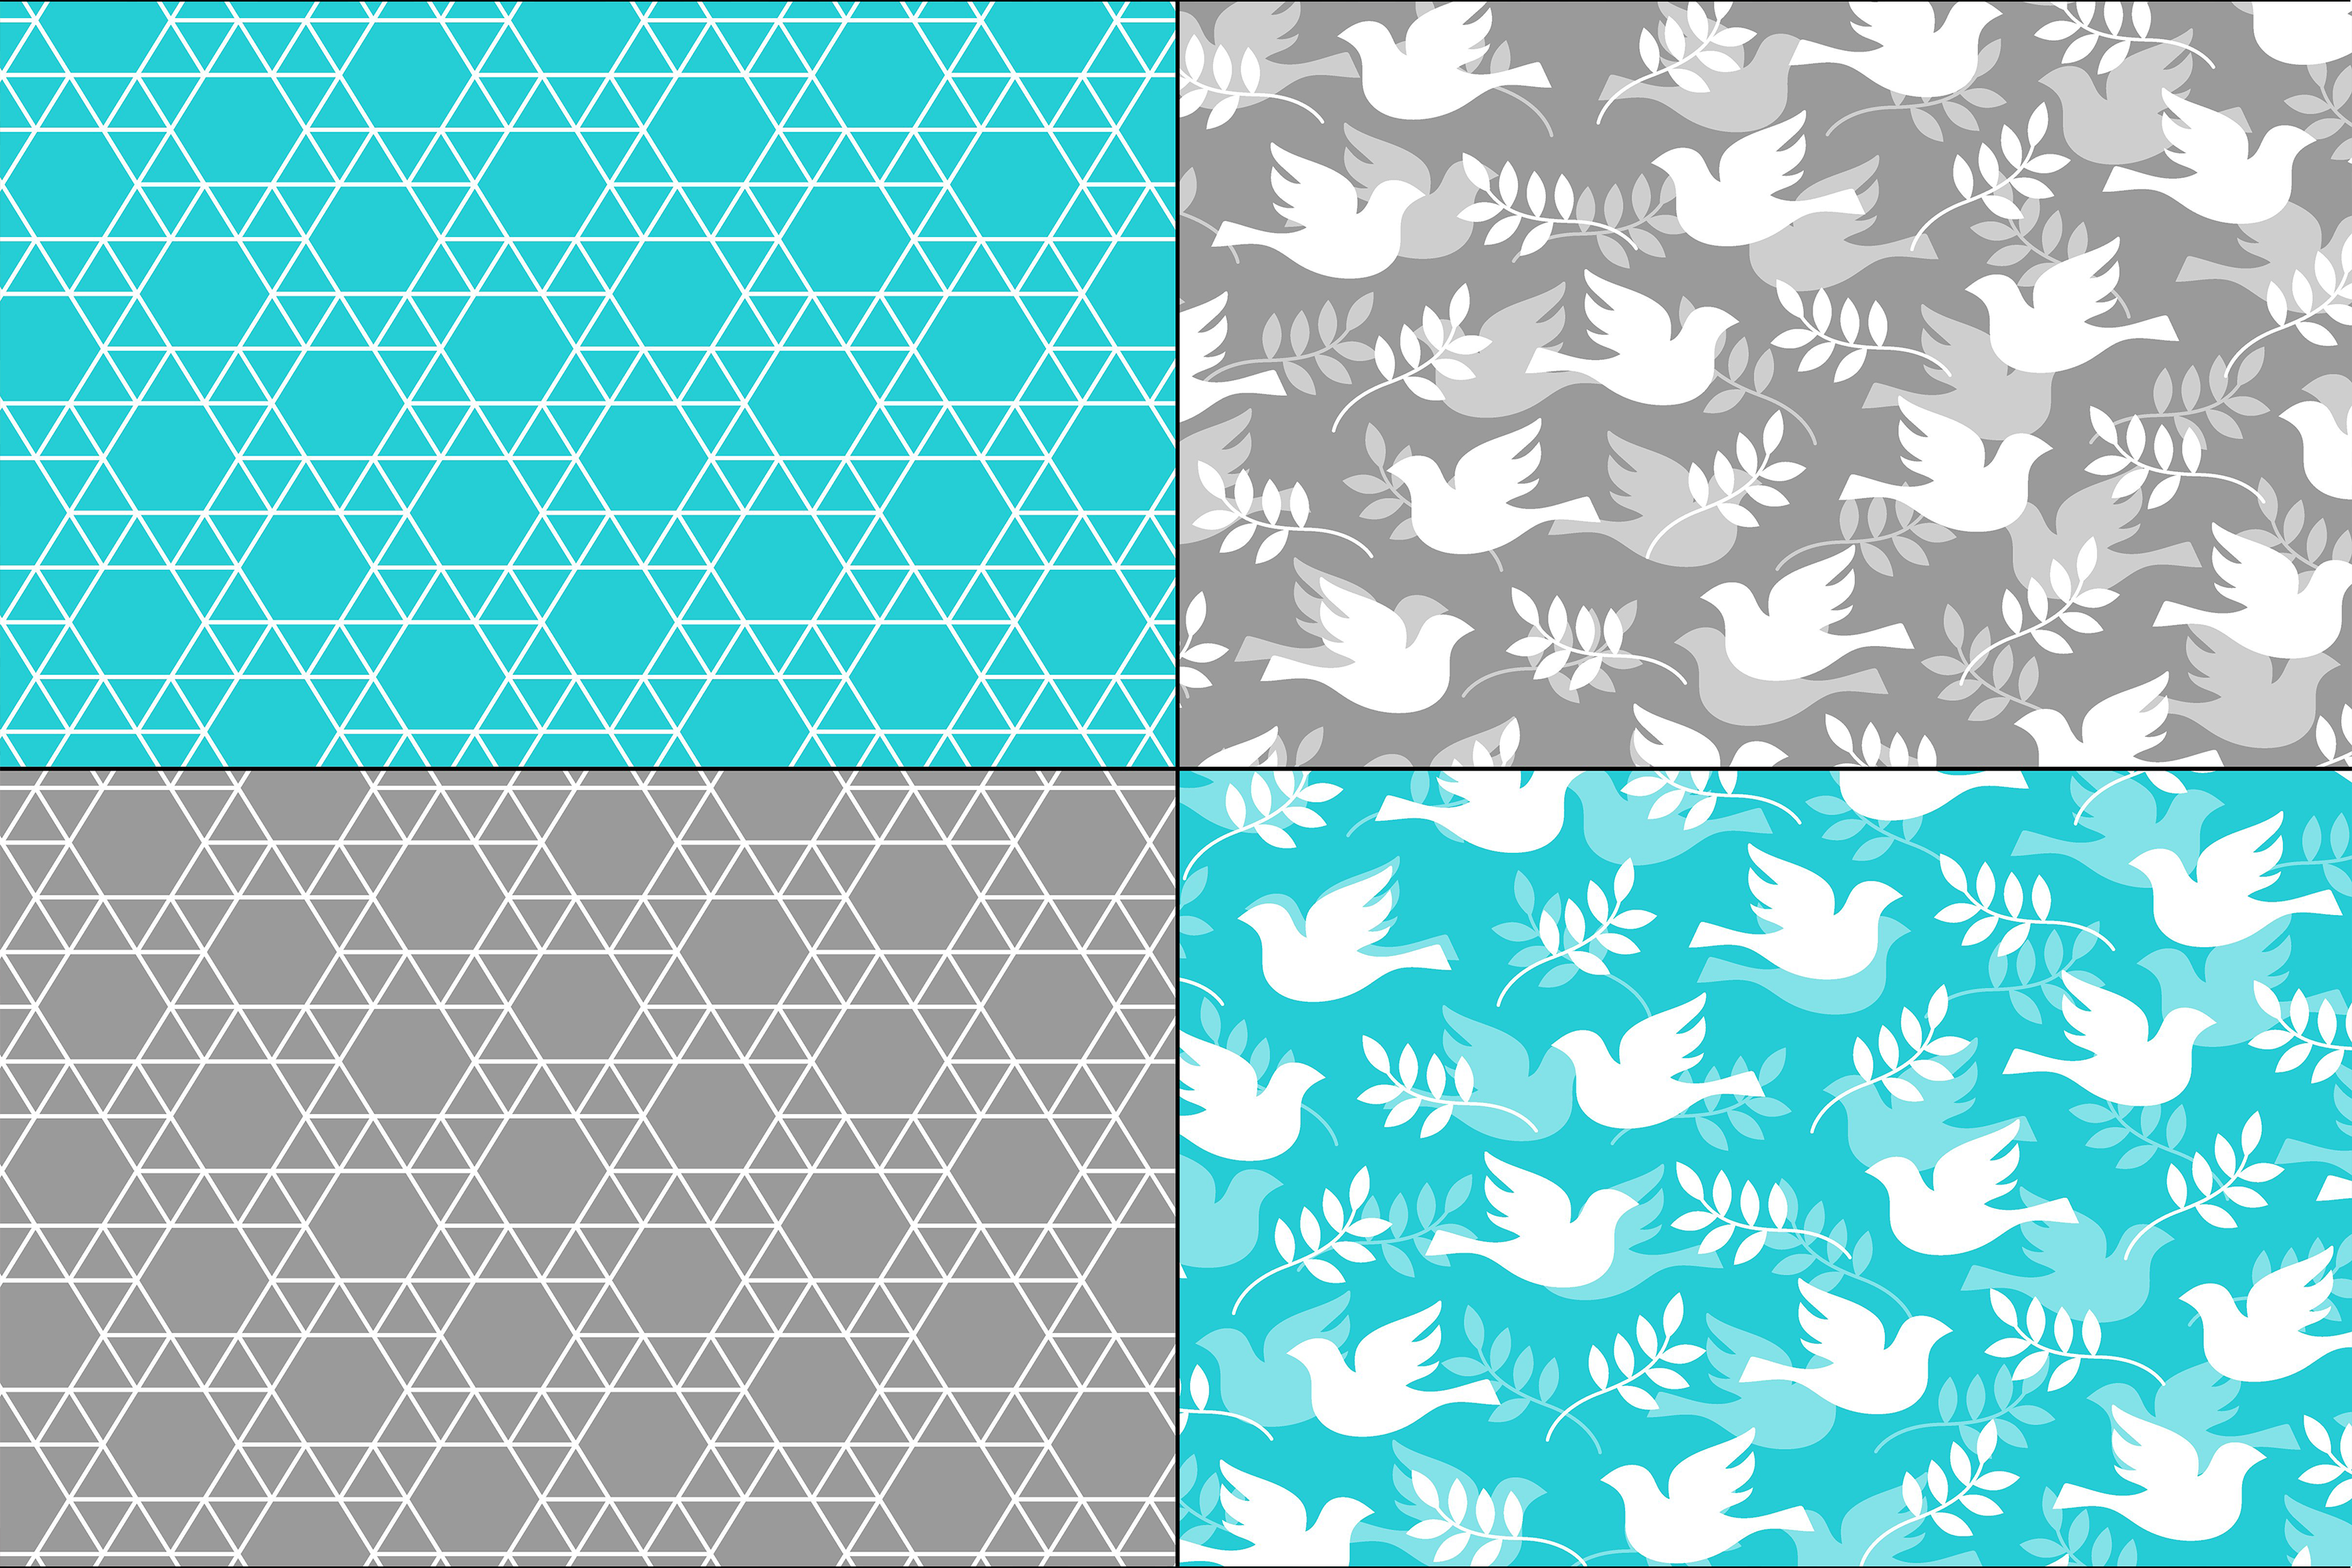 Blue Gray Hanukkah Patterns example image 3